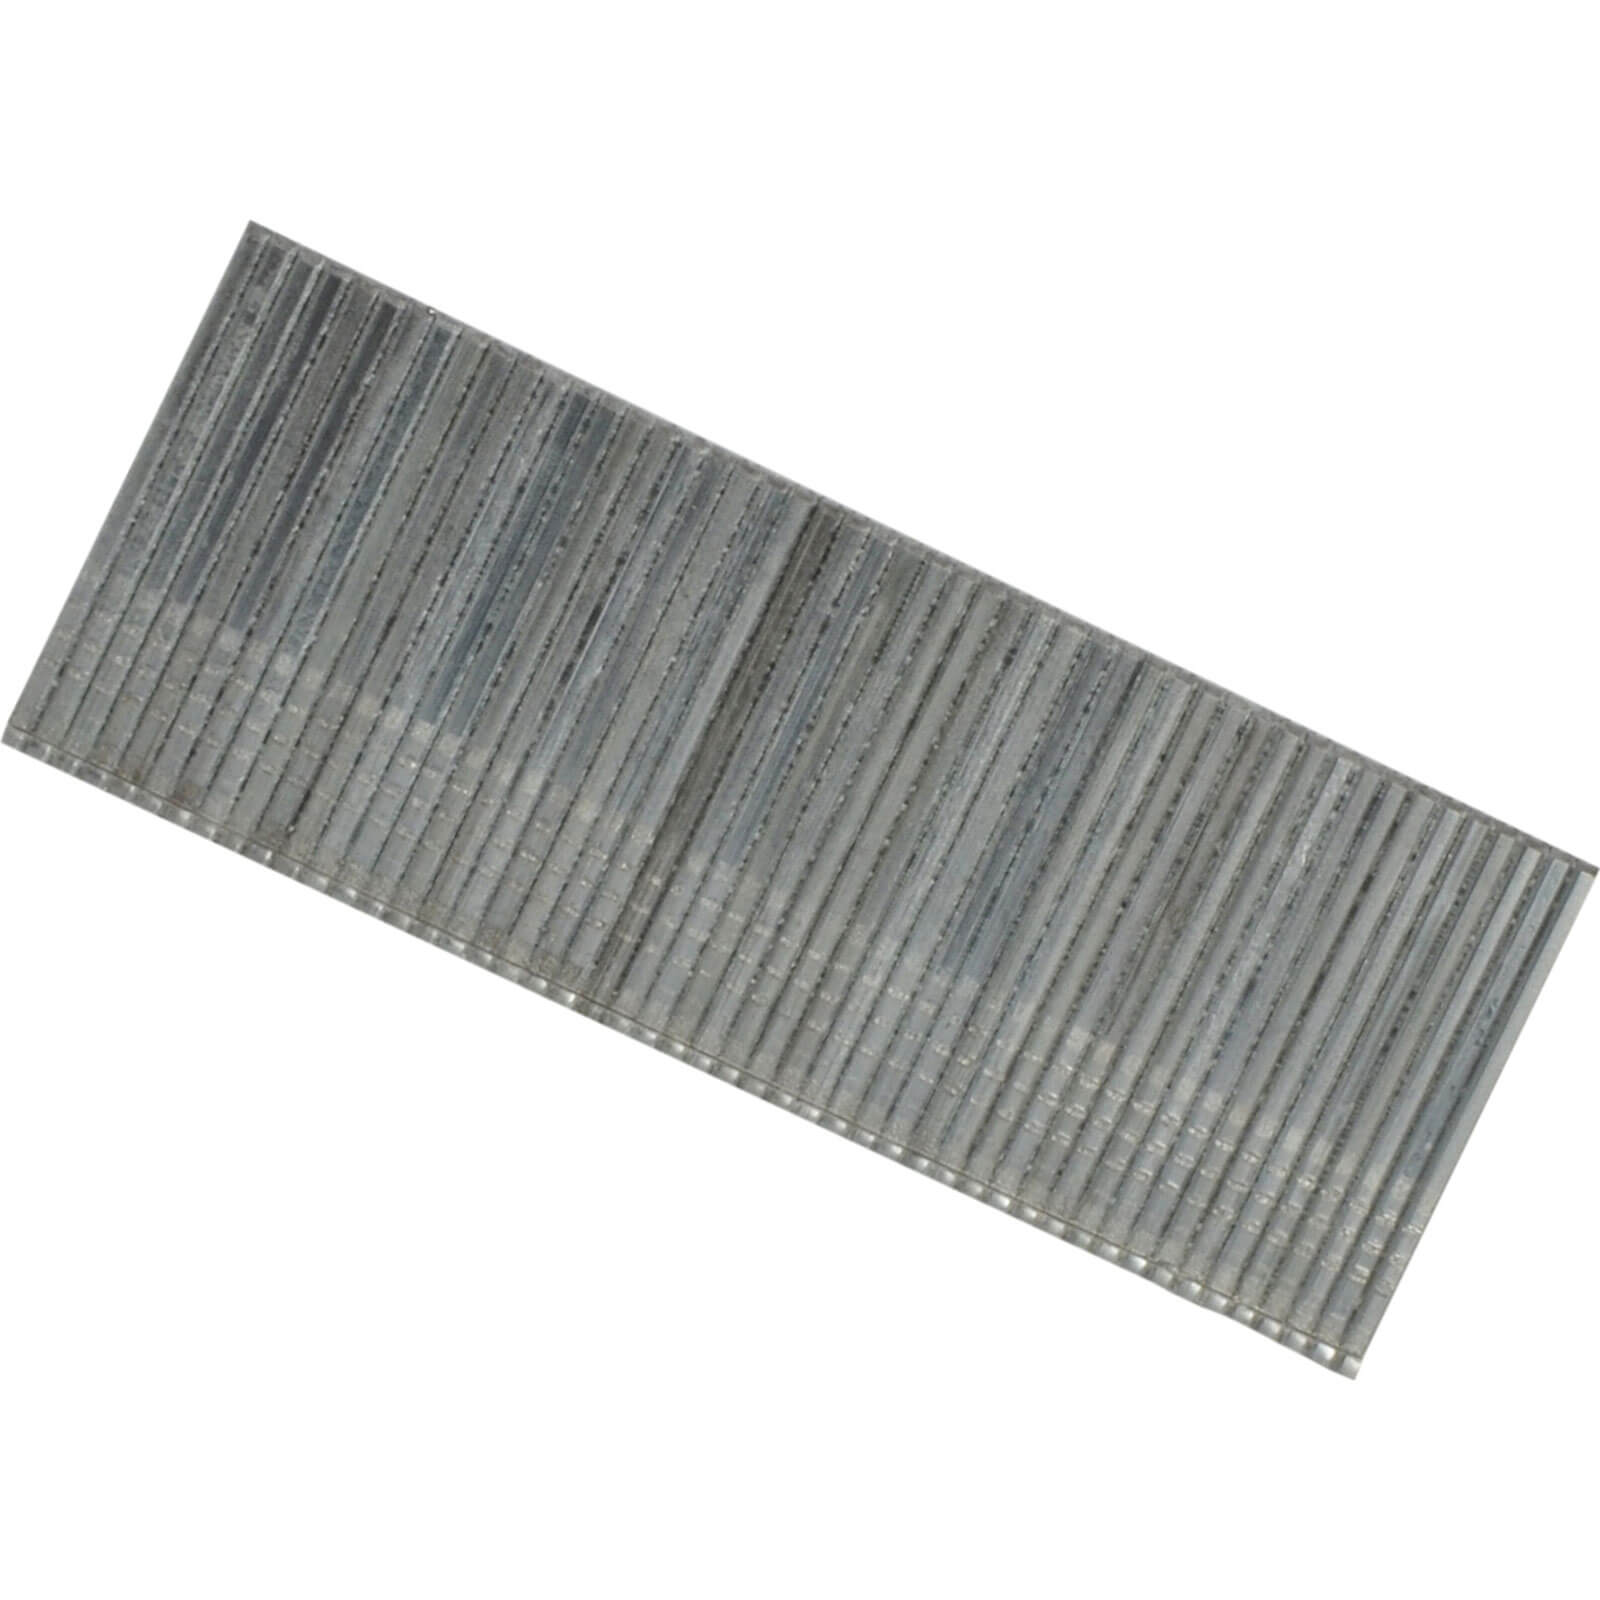 Image of Stanley Bostitch 16 Gauge Straight Finish Nails 50mm Pack of 2500